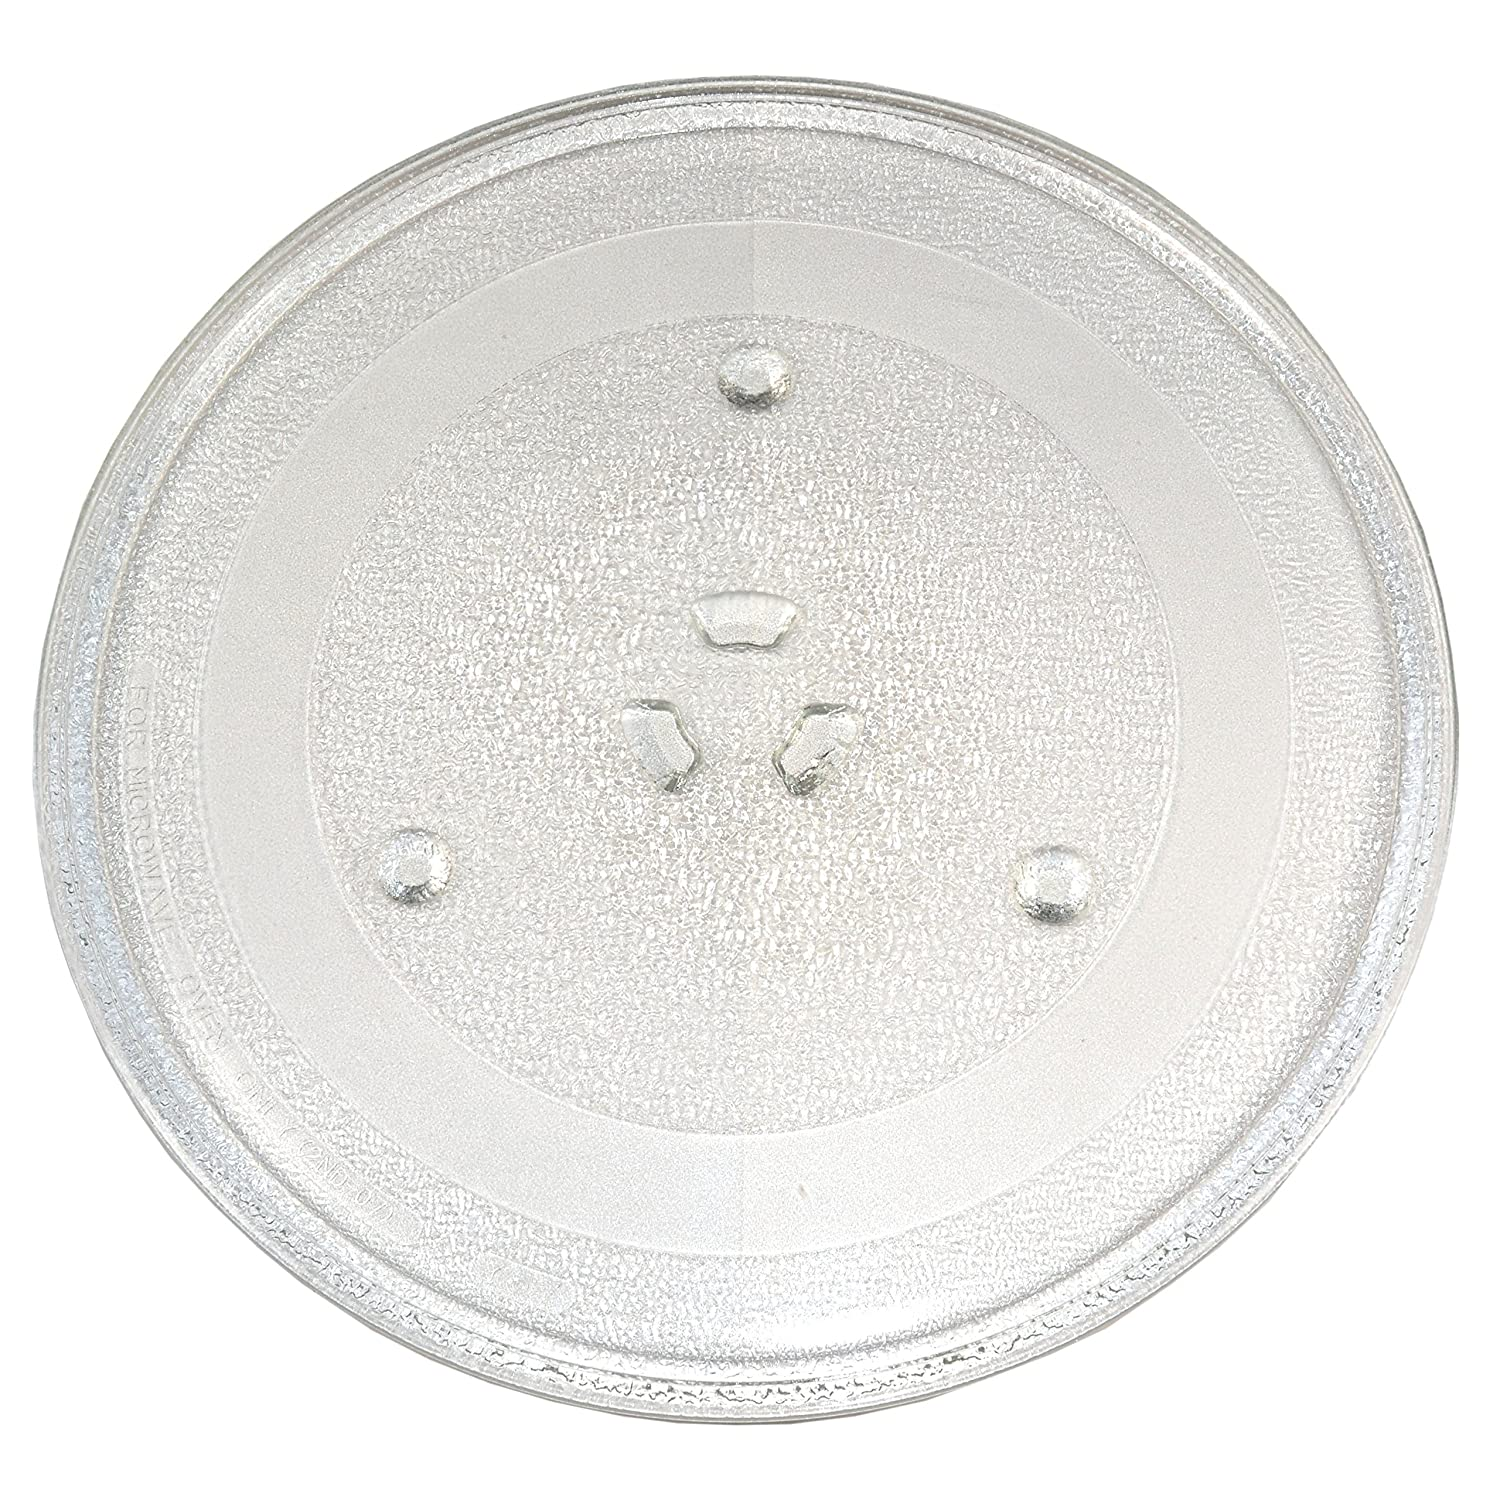 HQRP 11-1/4 inch Glass Turntable Tray for Westinghouse WST3507SS Microwave Oven Cooking Plate + HQRP Coaster